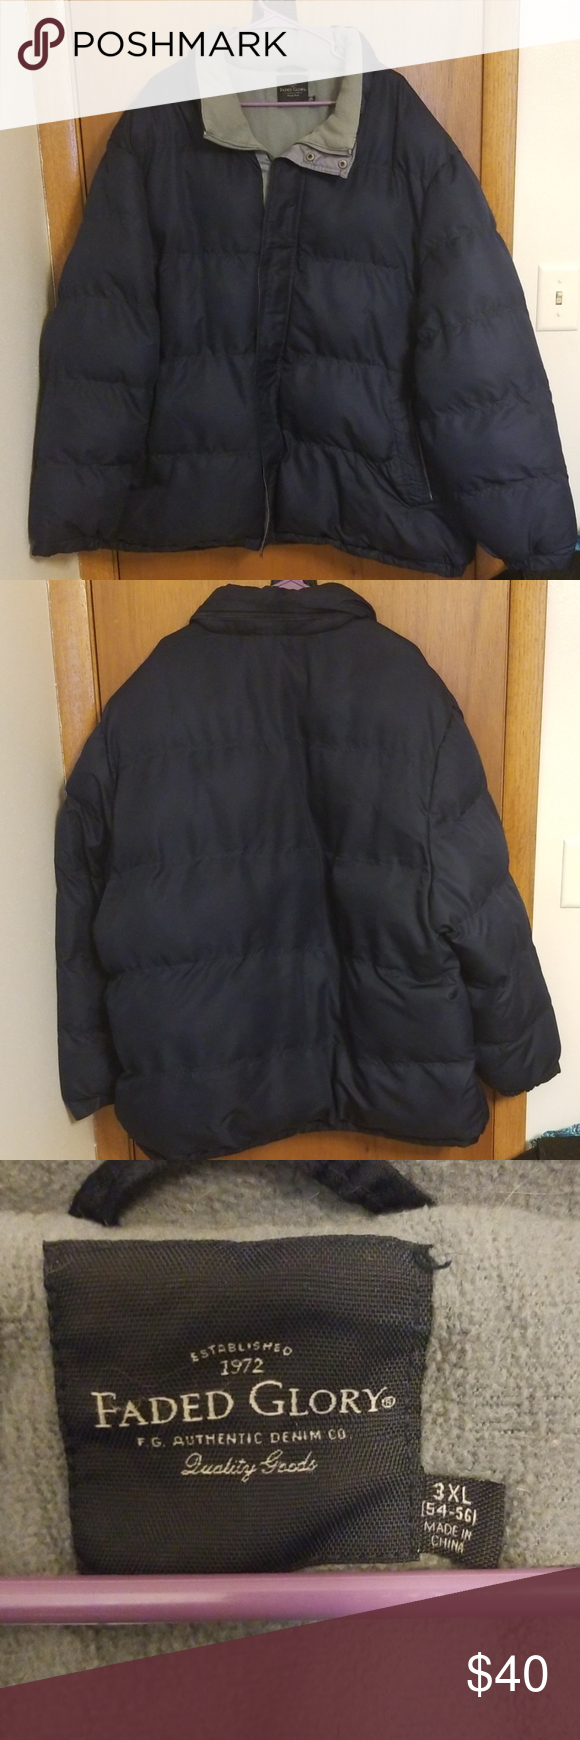 Mens 3xl Puffer Jacket Faded Glory Mens 3xl Ski Puffer Jacket Dark Navy Color Insulated Zippered Lay Down With Hidden Hood 2 Fro Jackets Puffer Jackets Puffer [ 1740 x 580 Pixel ]